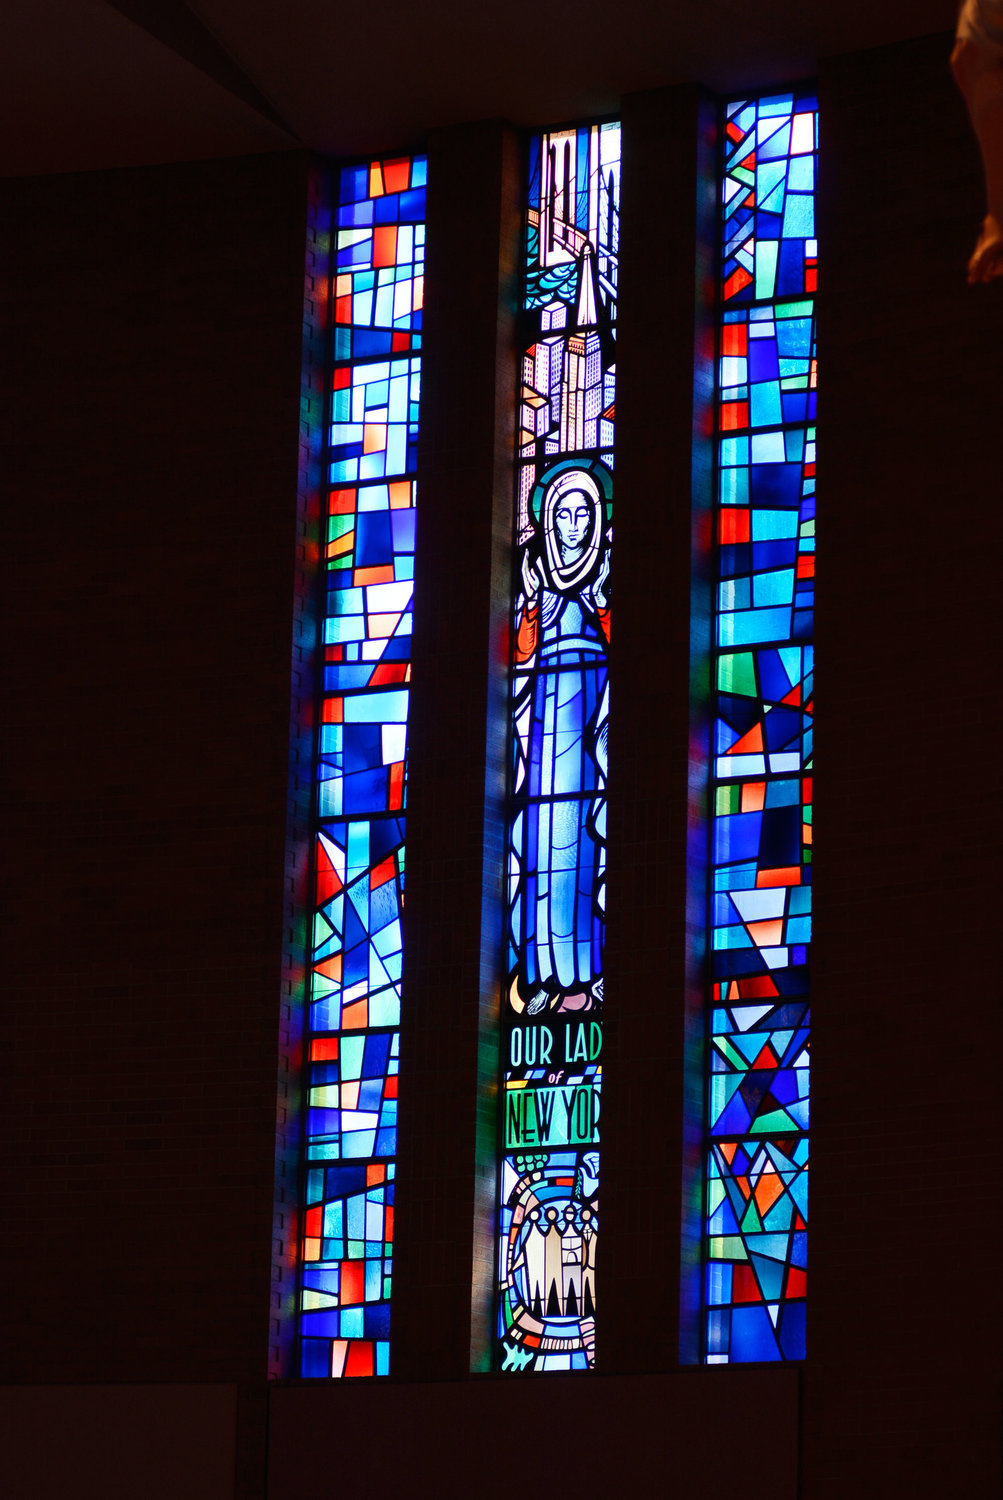 Stained glass windows in Our Lady of Perpetual Help Church capture Our Lady of New York before the Manhattan skyline.